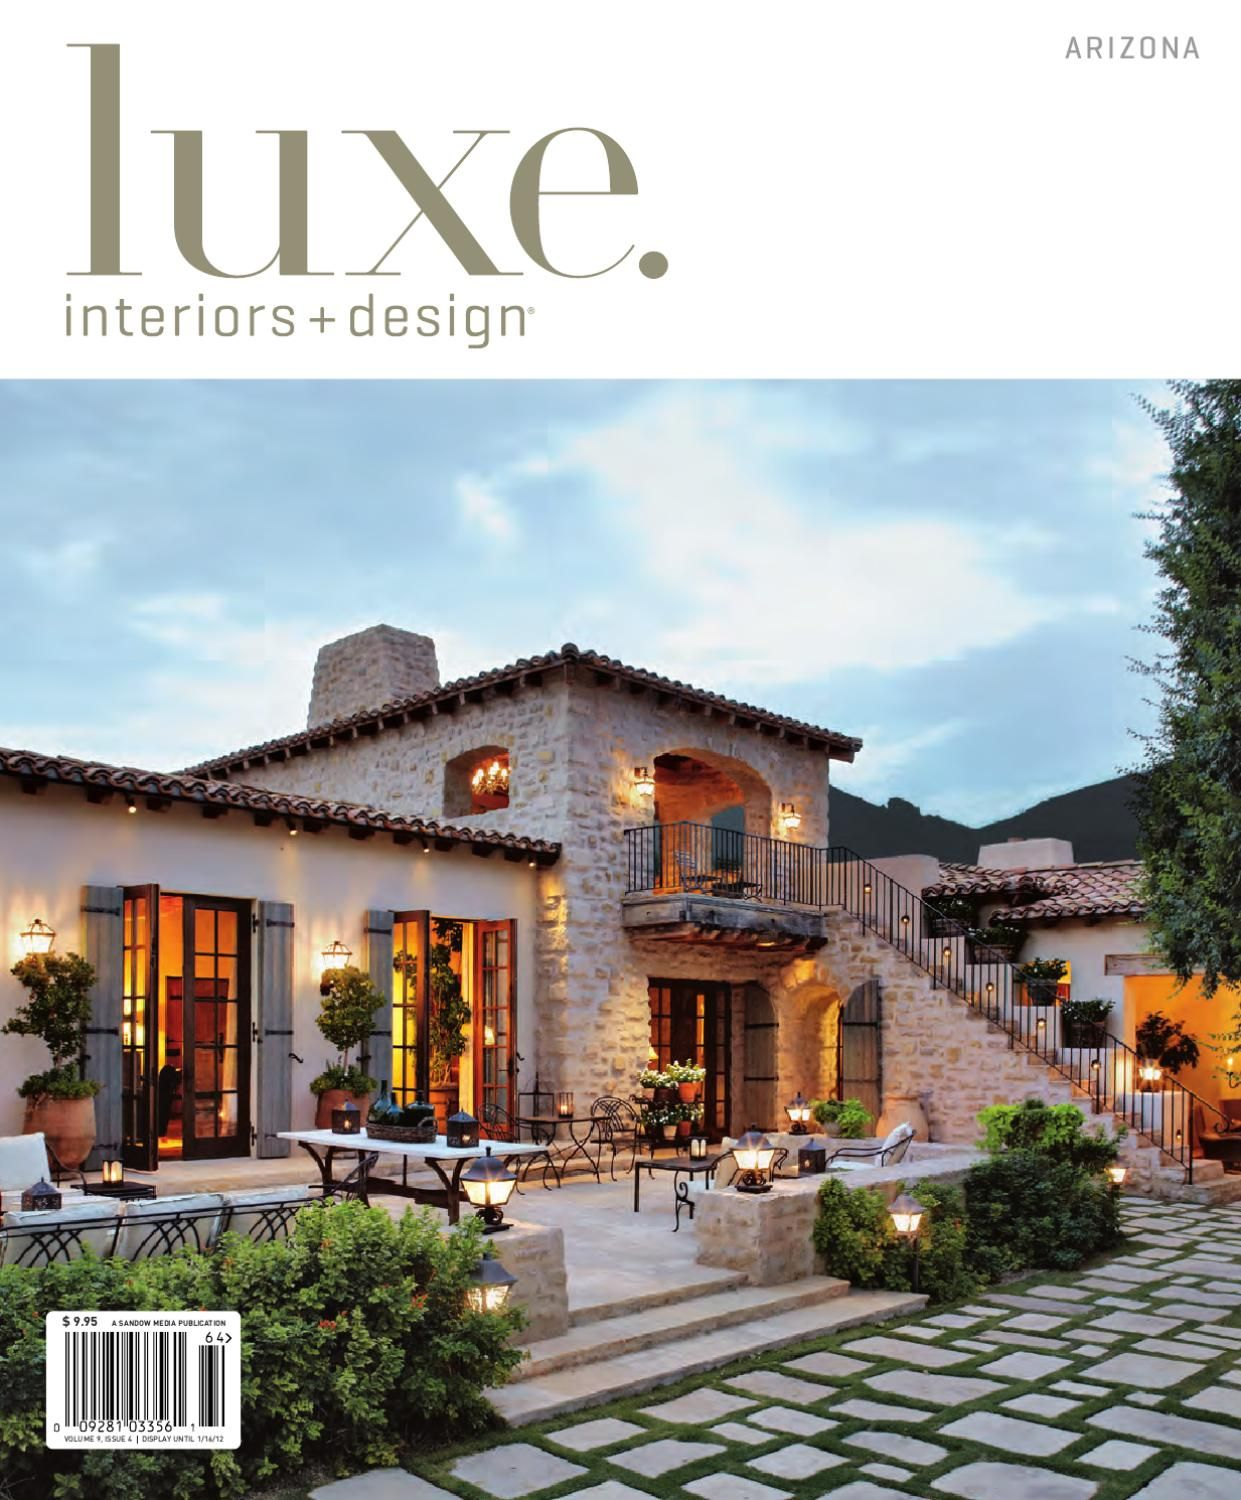 Luxe Interior Design Arzona 13 Interior Design